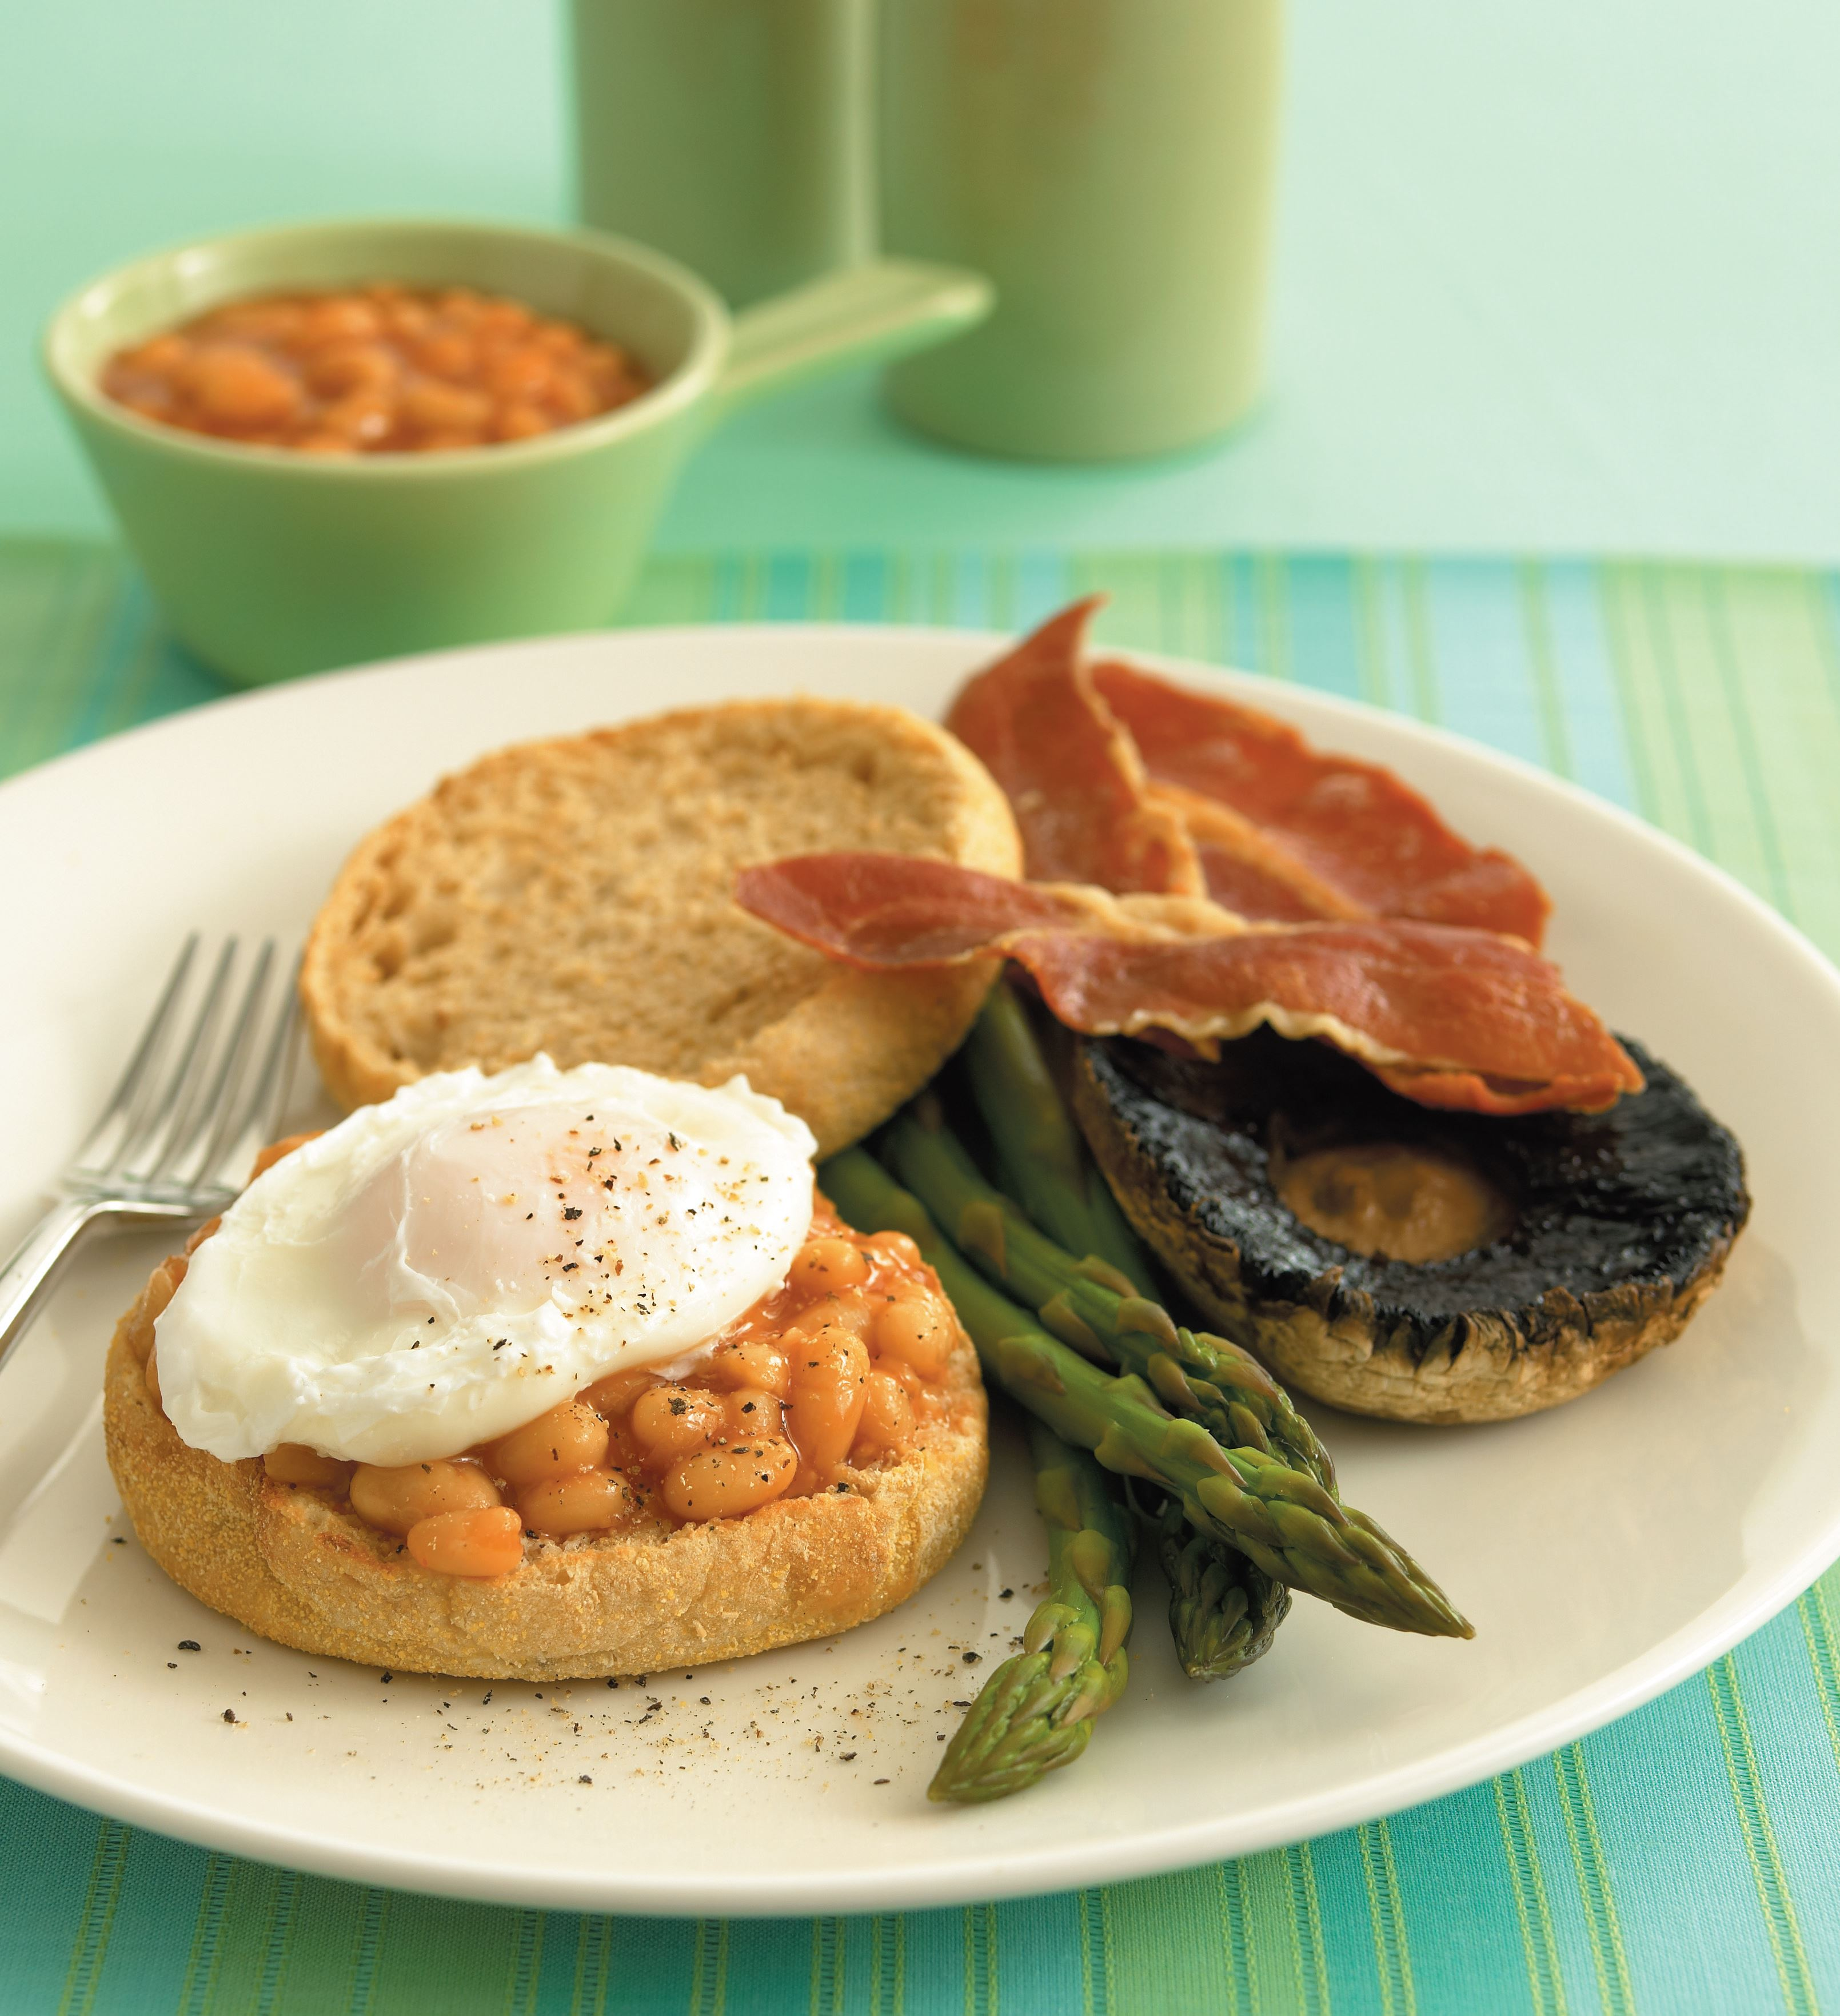 Big healthy breakfast with baked beans